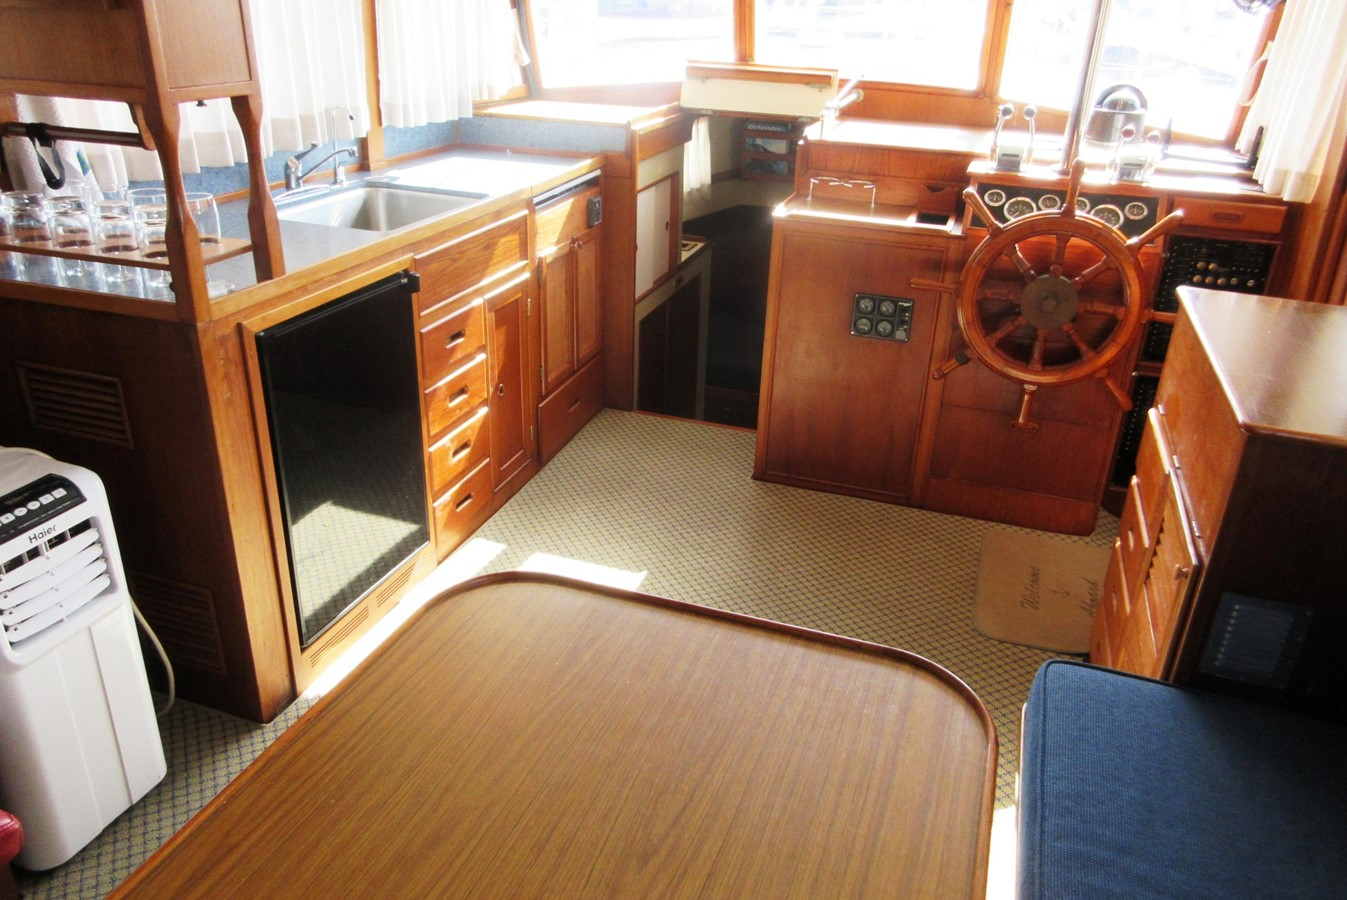 Salon, forward to Galley, Fore Cabin entrance & Helm Station 1980 GRAND BANKS 42 Classic Trawler 2865716